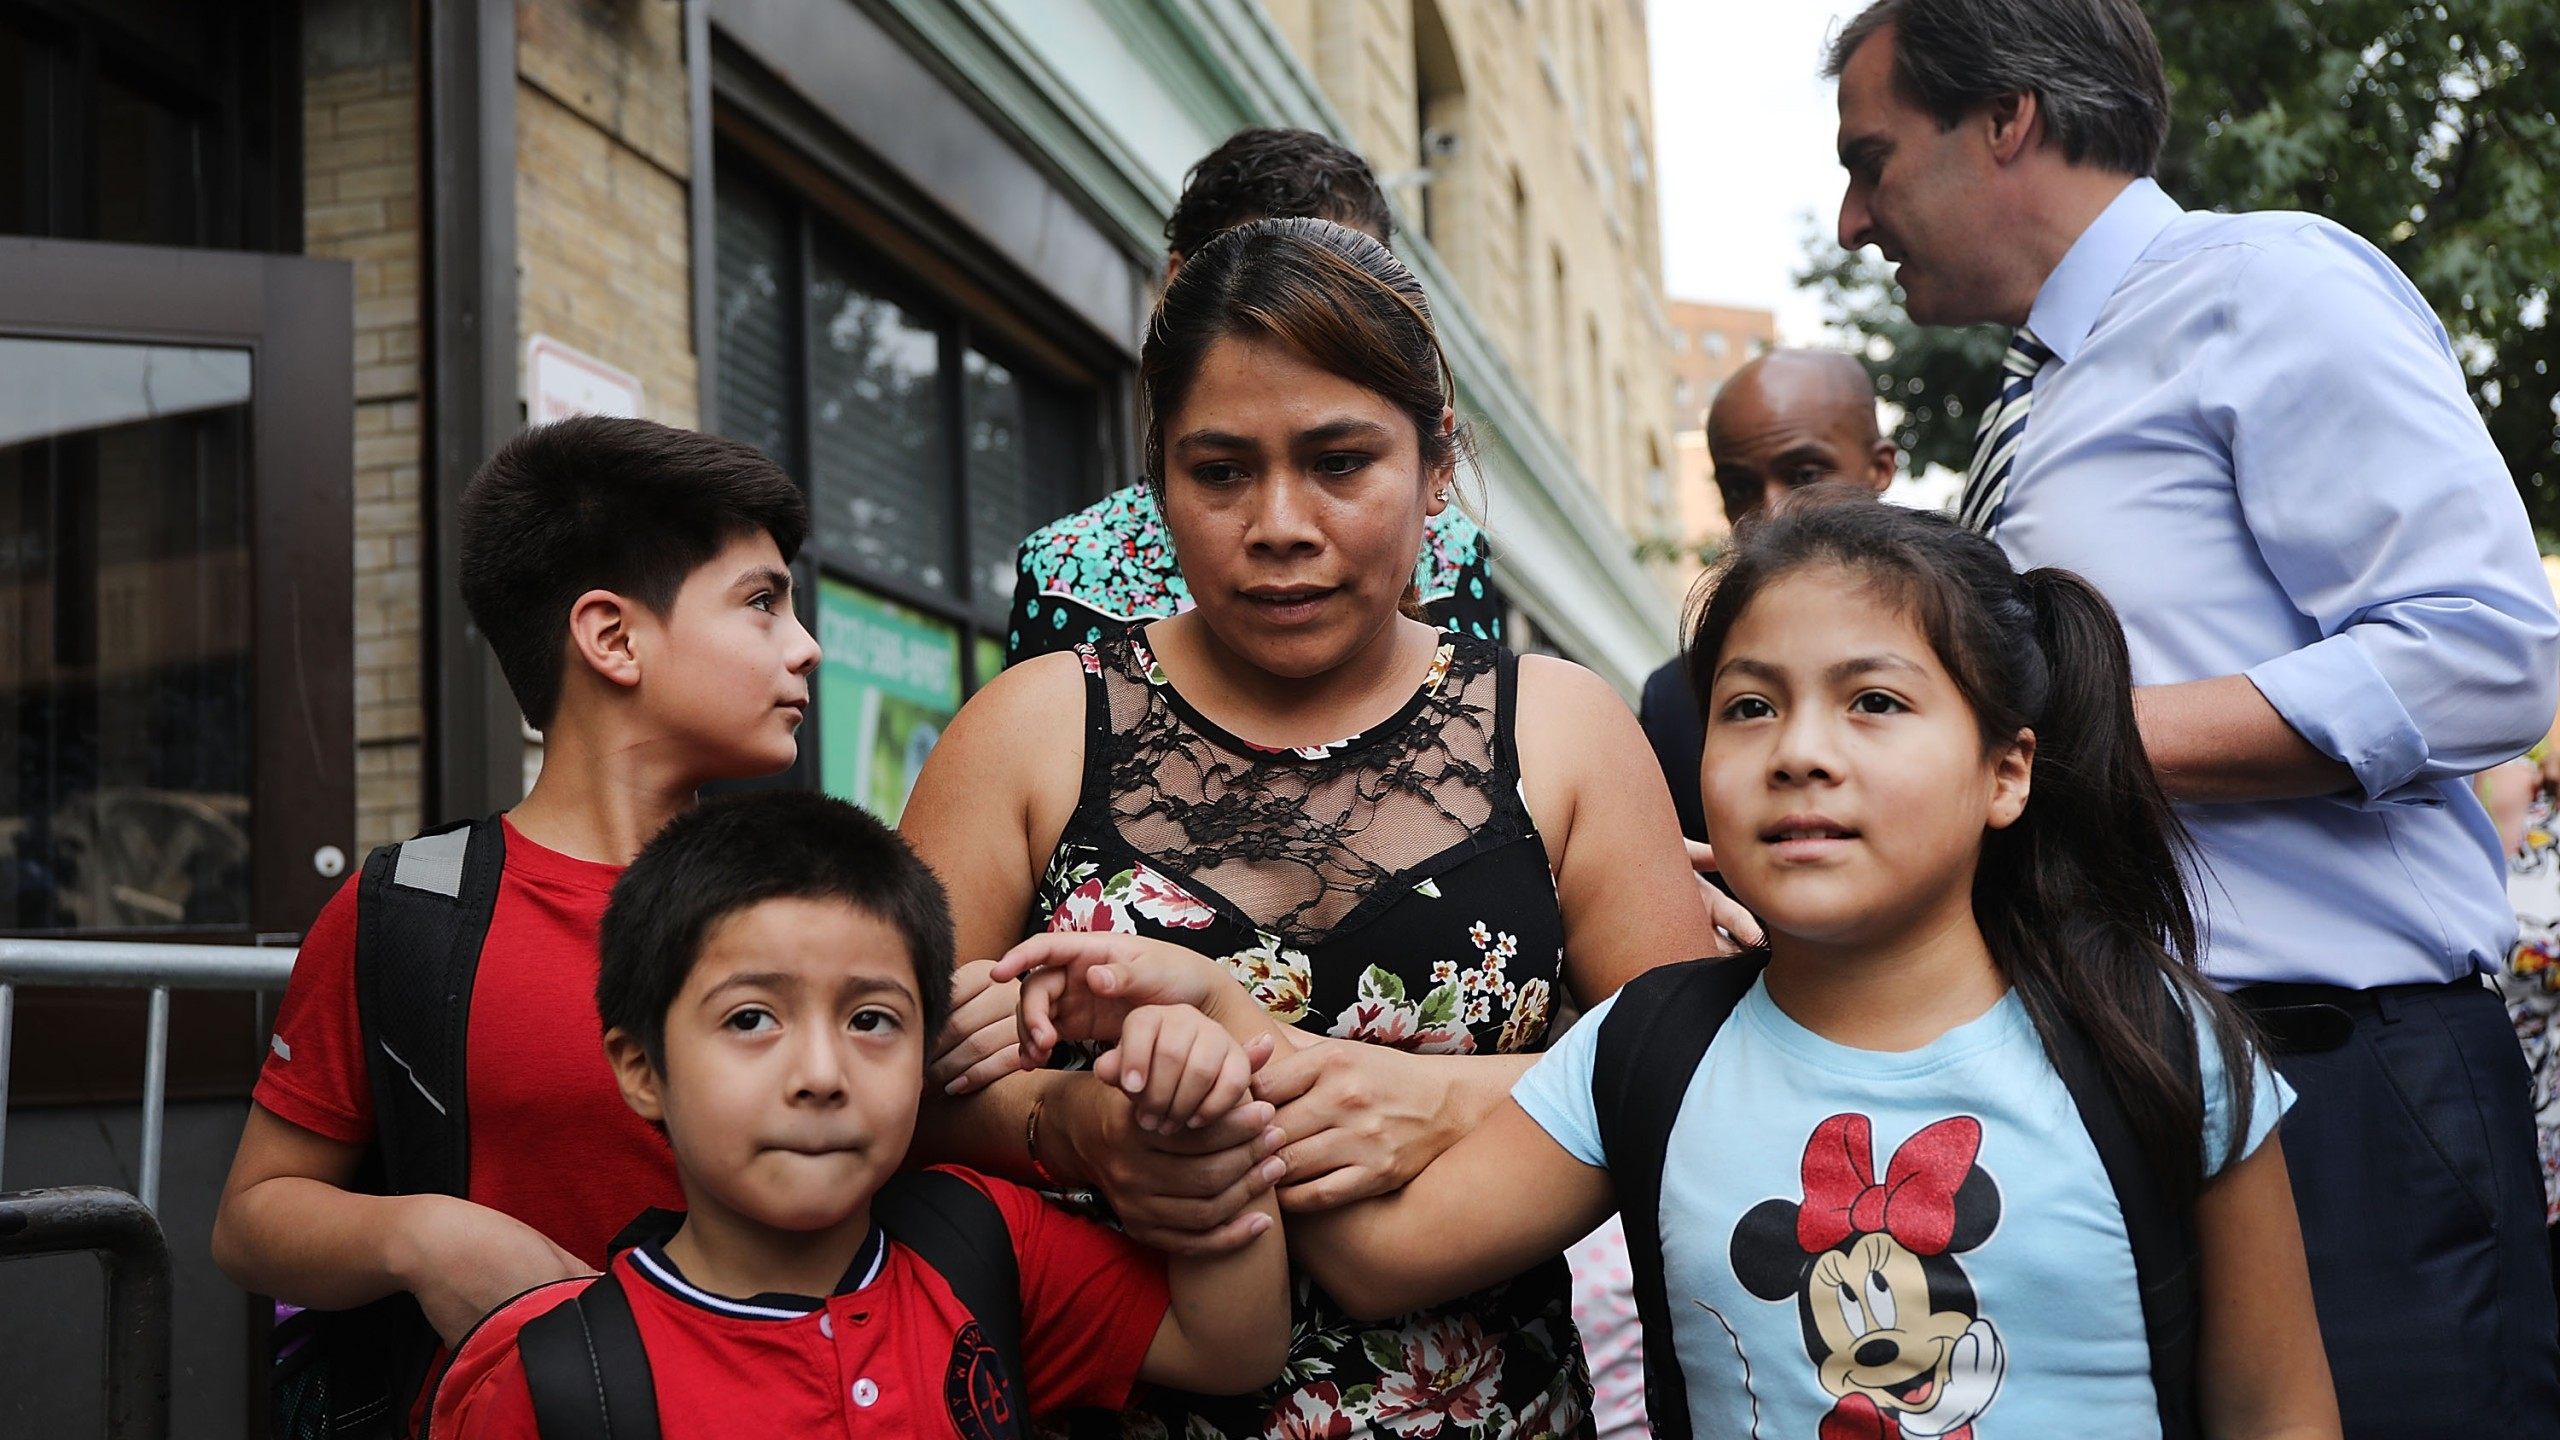 Yeni Maricela Gonzalez Garcia (center) stands with her children, 6-year-old Deyuin (left), 9-year-old Jamelin (right) and 11-year-old Lester (back) as she and her lawyer speak with the news media after the family was reunited at the East Harlem Cayuga Centers in New York City on July 13, 2018. (Credit: Spencer Platt / Getty Images)